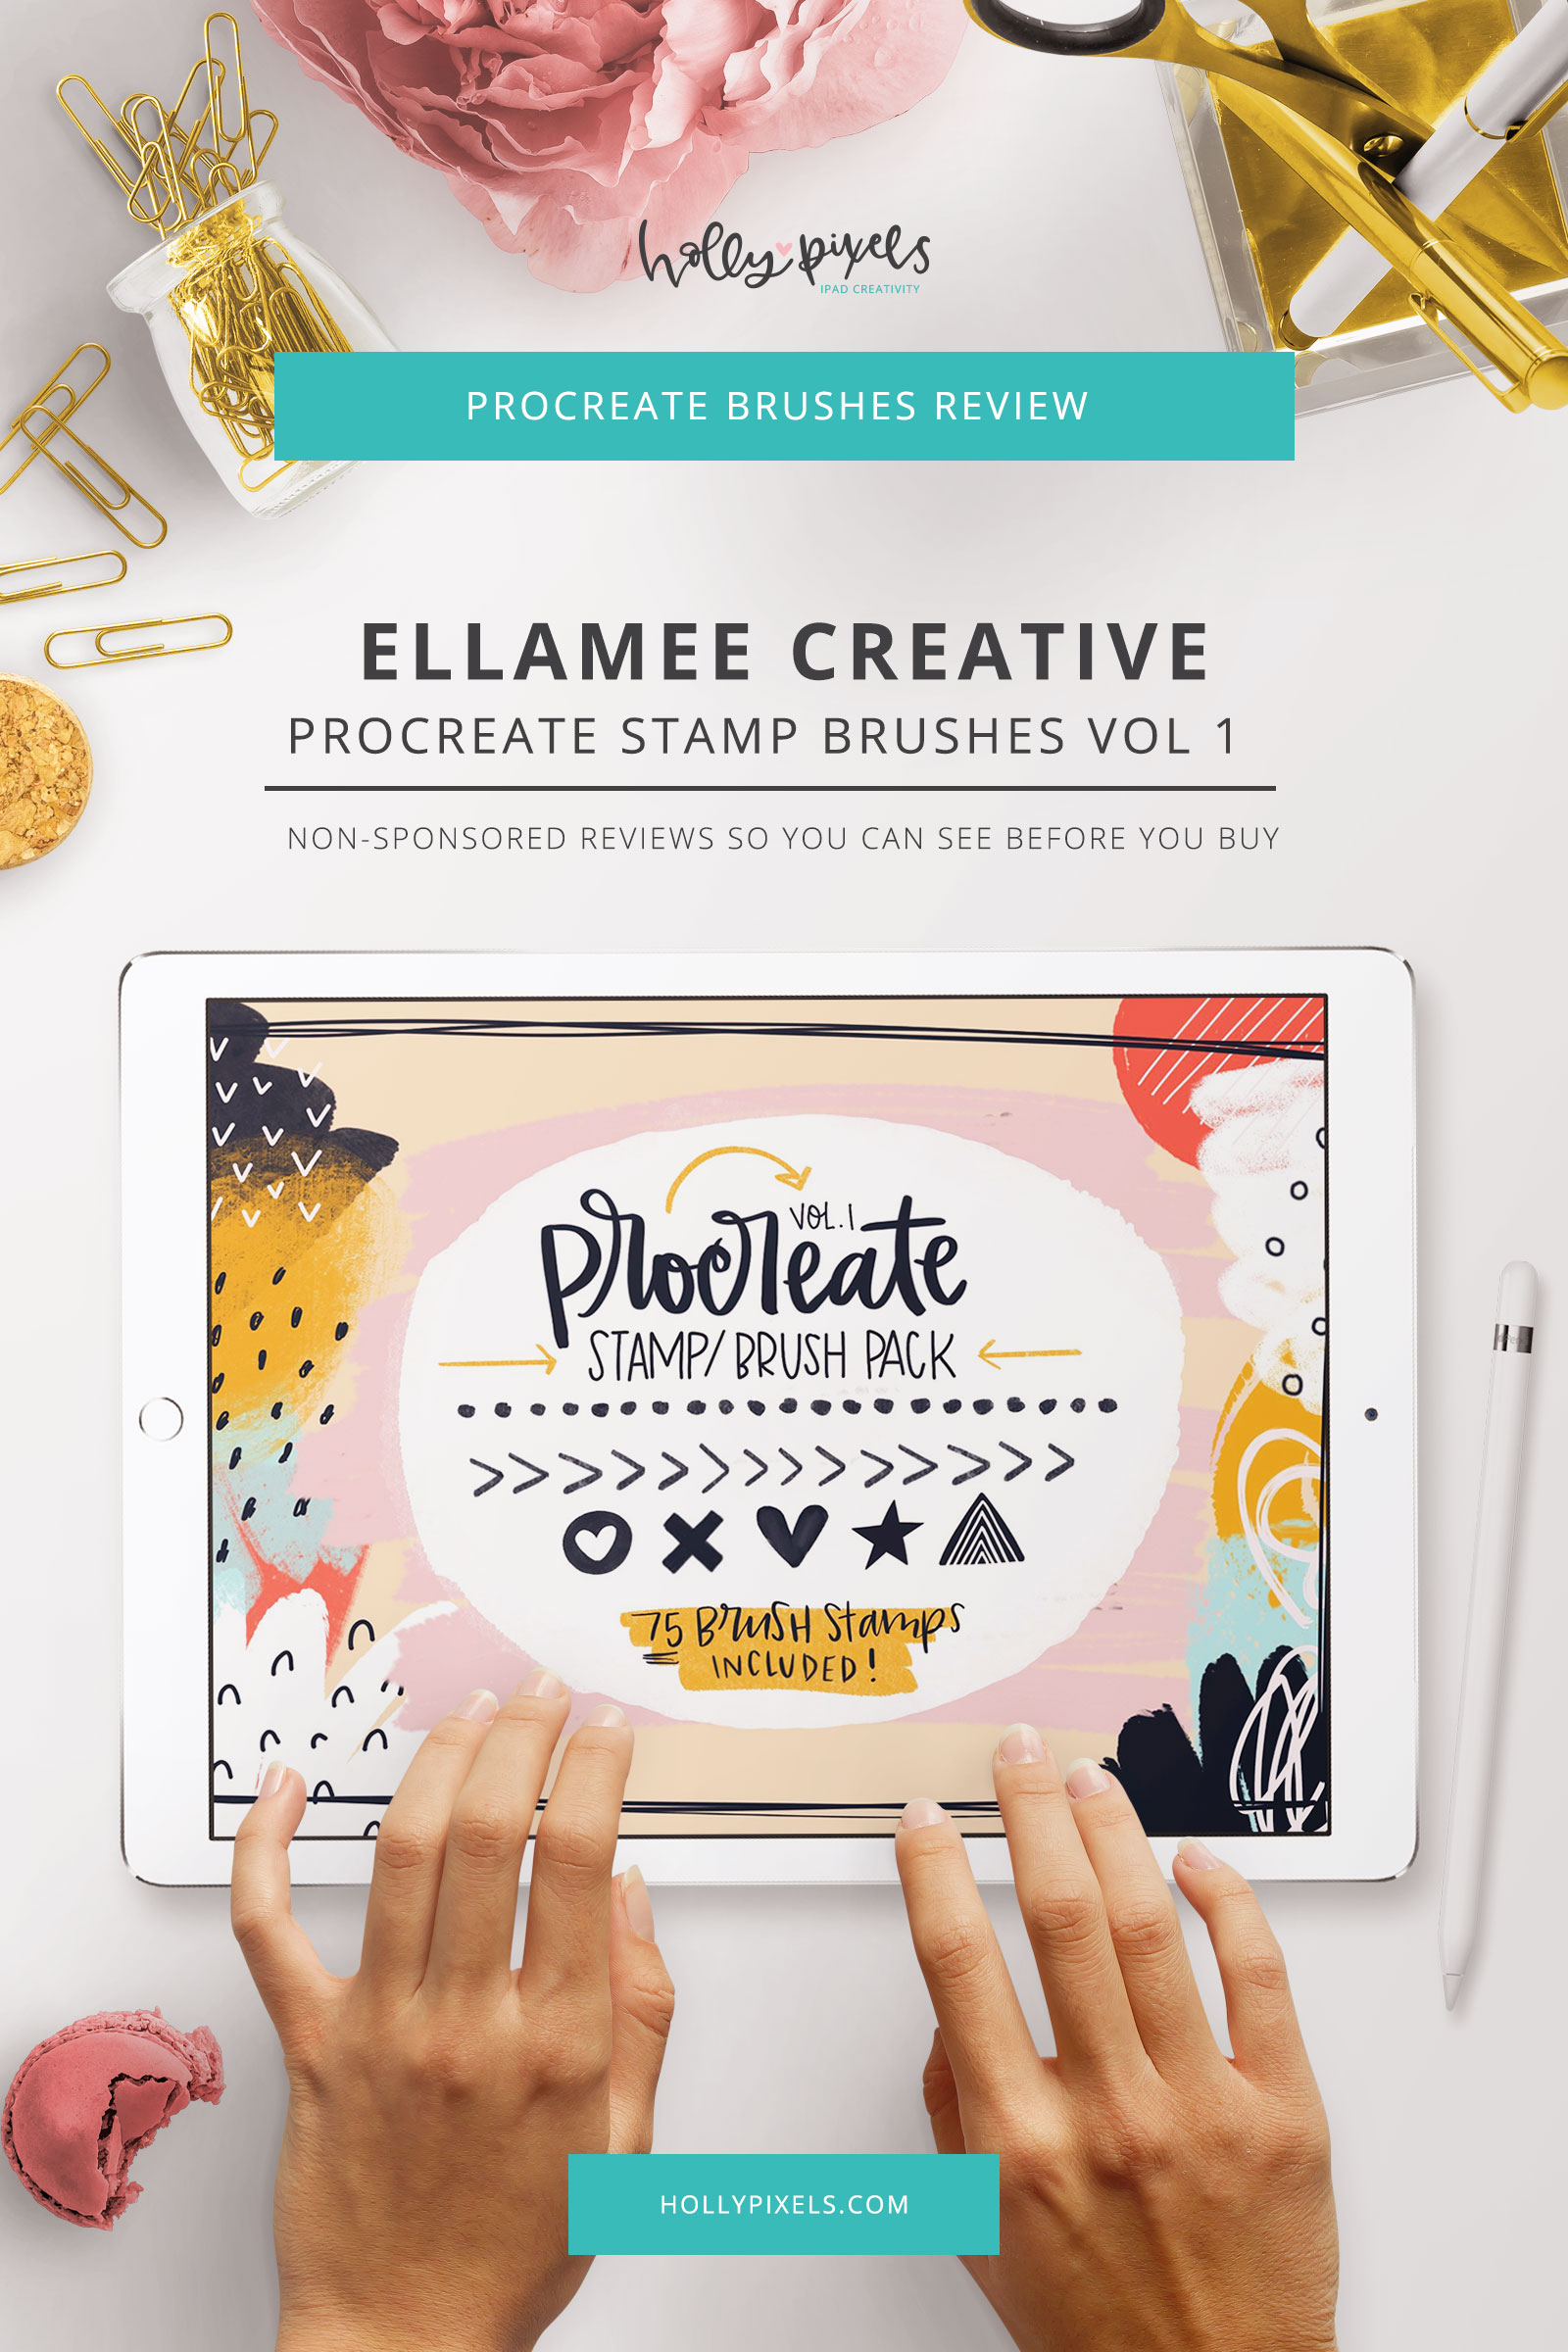 With this week's Procreate Brush Review I'm going to show you this set of quirky hand drawn style brush stamp for Procreate. This set is by West Ellamee and can be purchased on Creative Market.